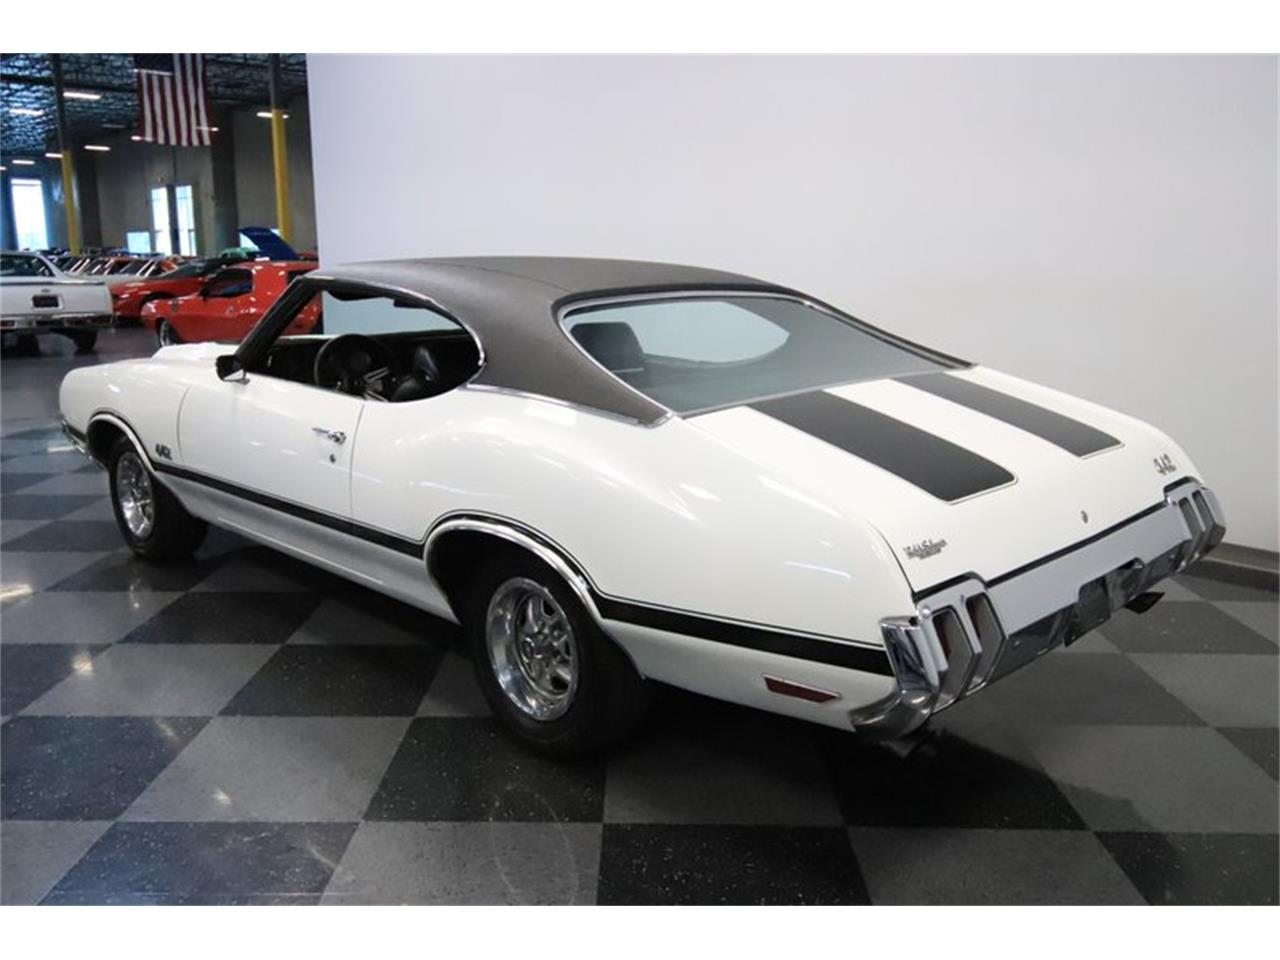 Large Picture of Classic 1970 442 located in Arizona - $34,995.00 Offered by Streetside Classics - Phoenix - Q7BT